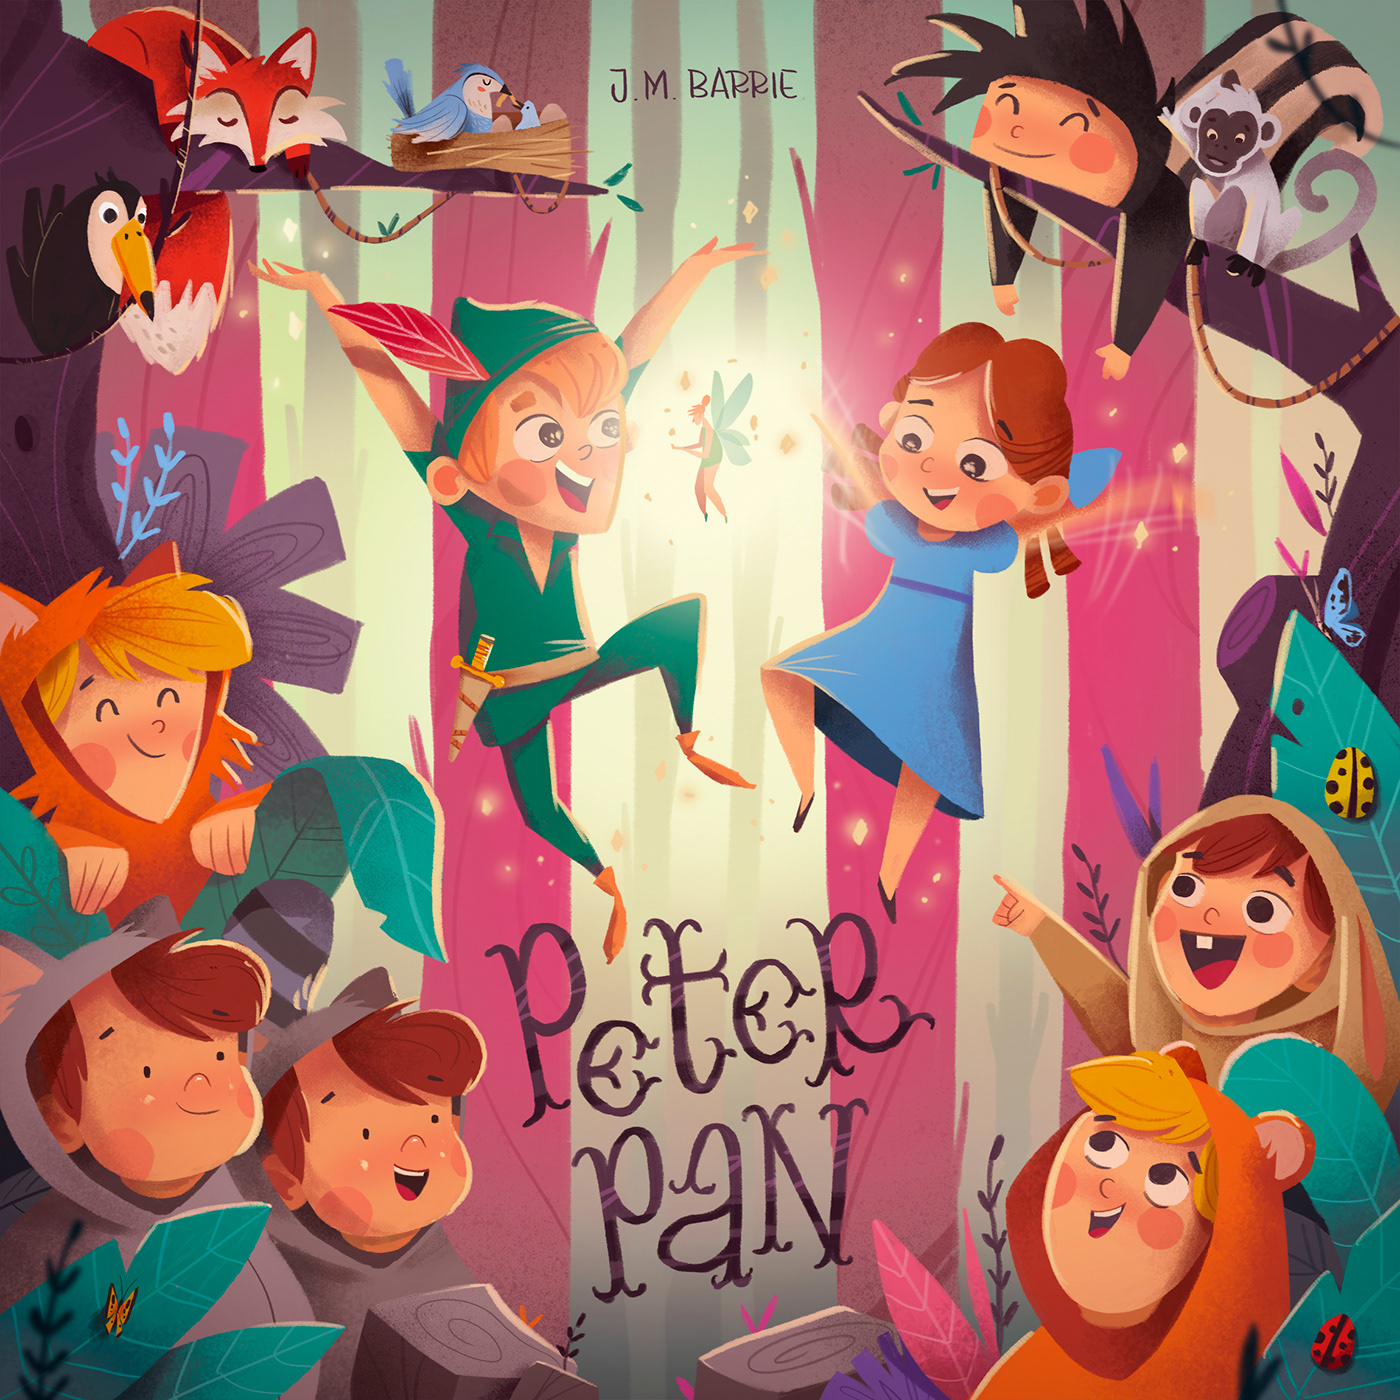 classic tales,book,children's book,characters,peter pan,alice,Robin Hood,little red riding,mowgli,jungle's book